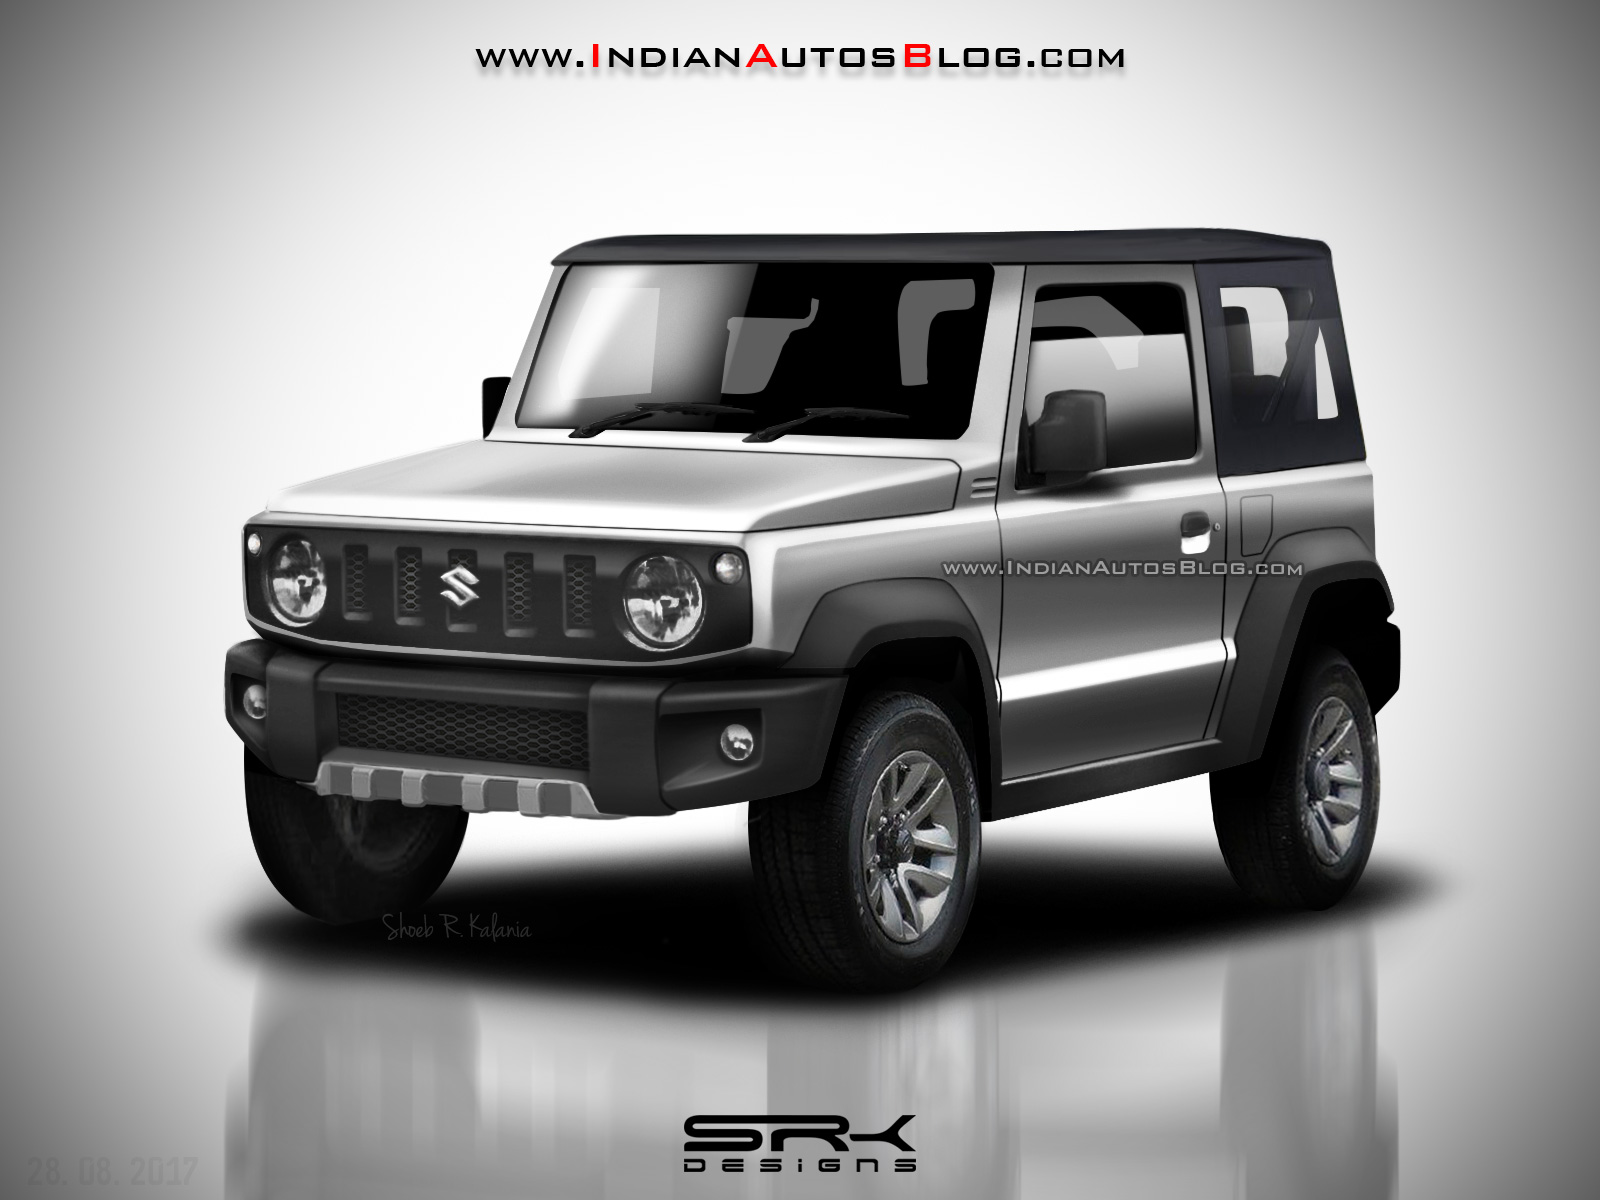 2018 suzuki jimny soft top variant rendered. Black Bedroom Furniture Sets. Home Design Ideas